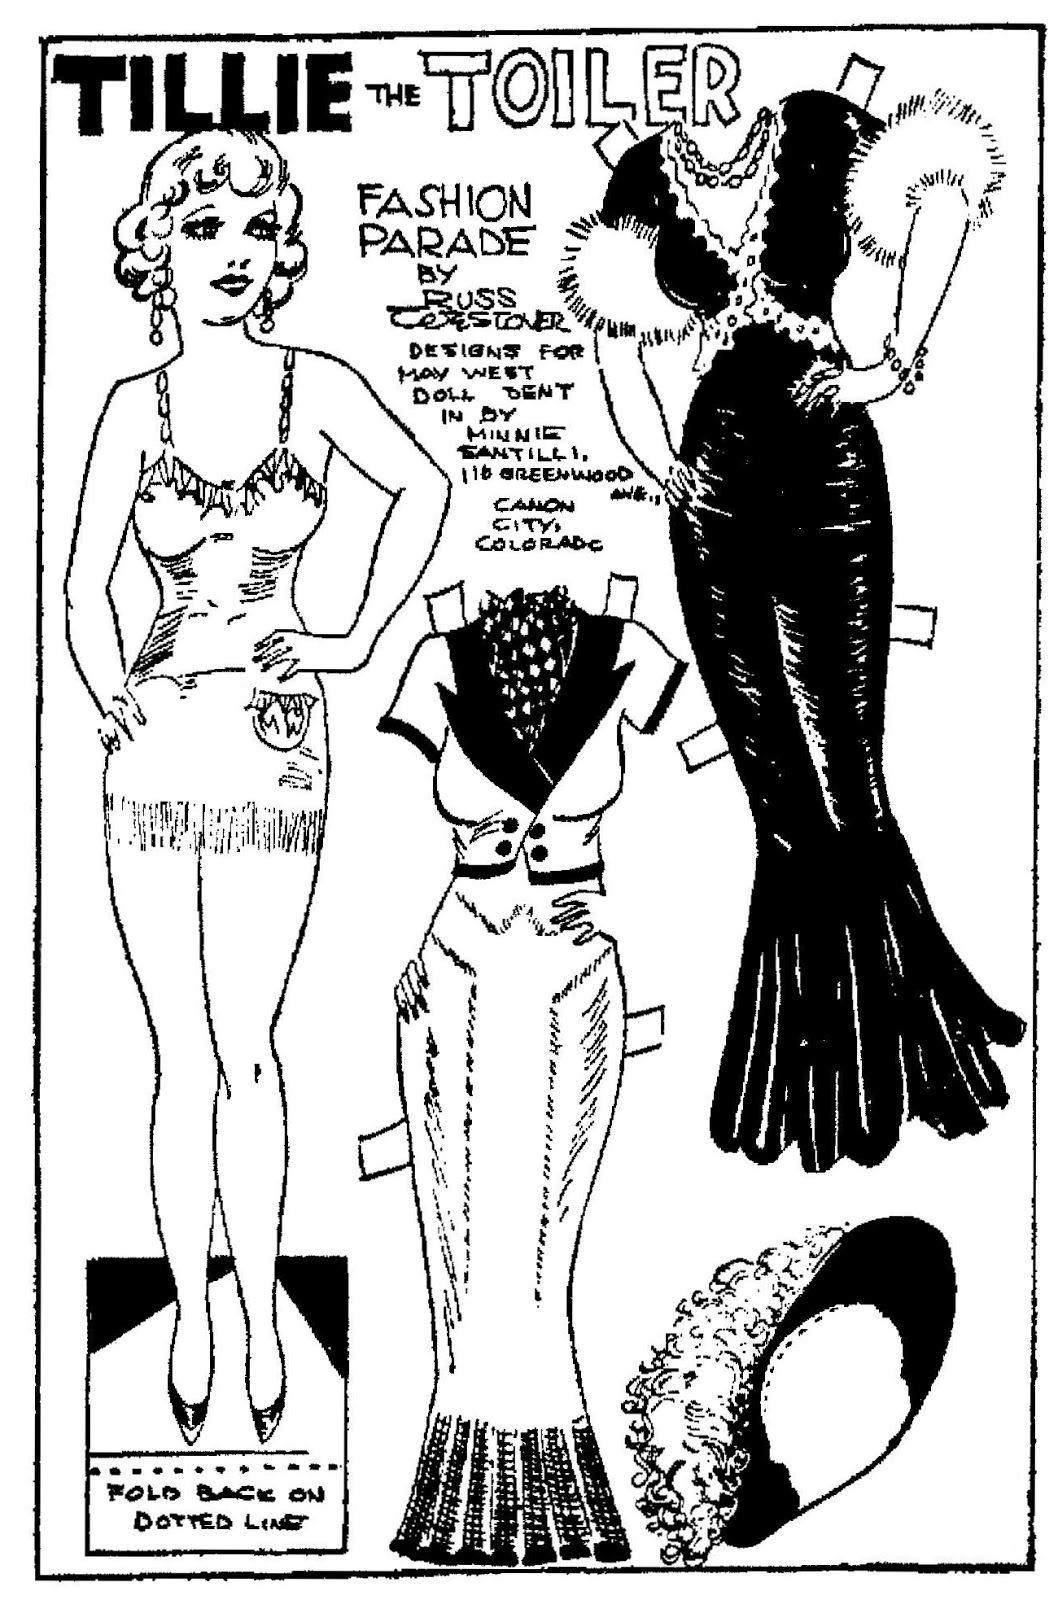 Mostly Paper Dolls Too!: 1934 Tillie the Toiler Comic